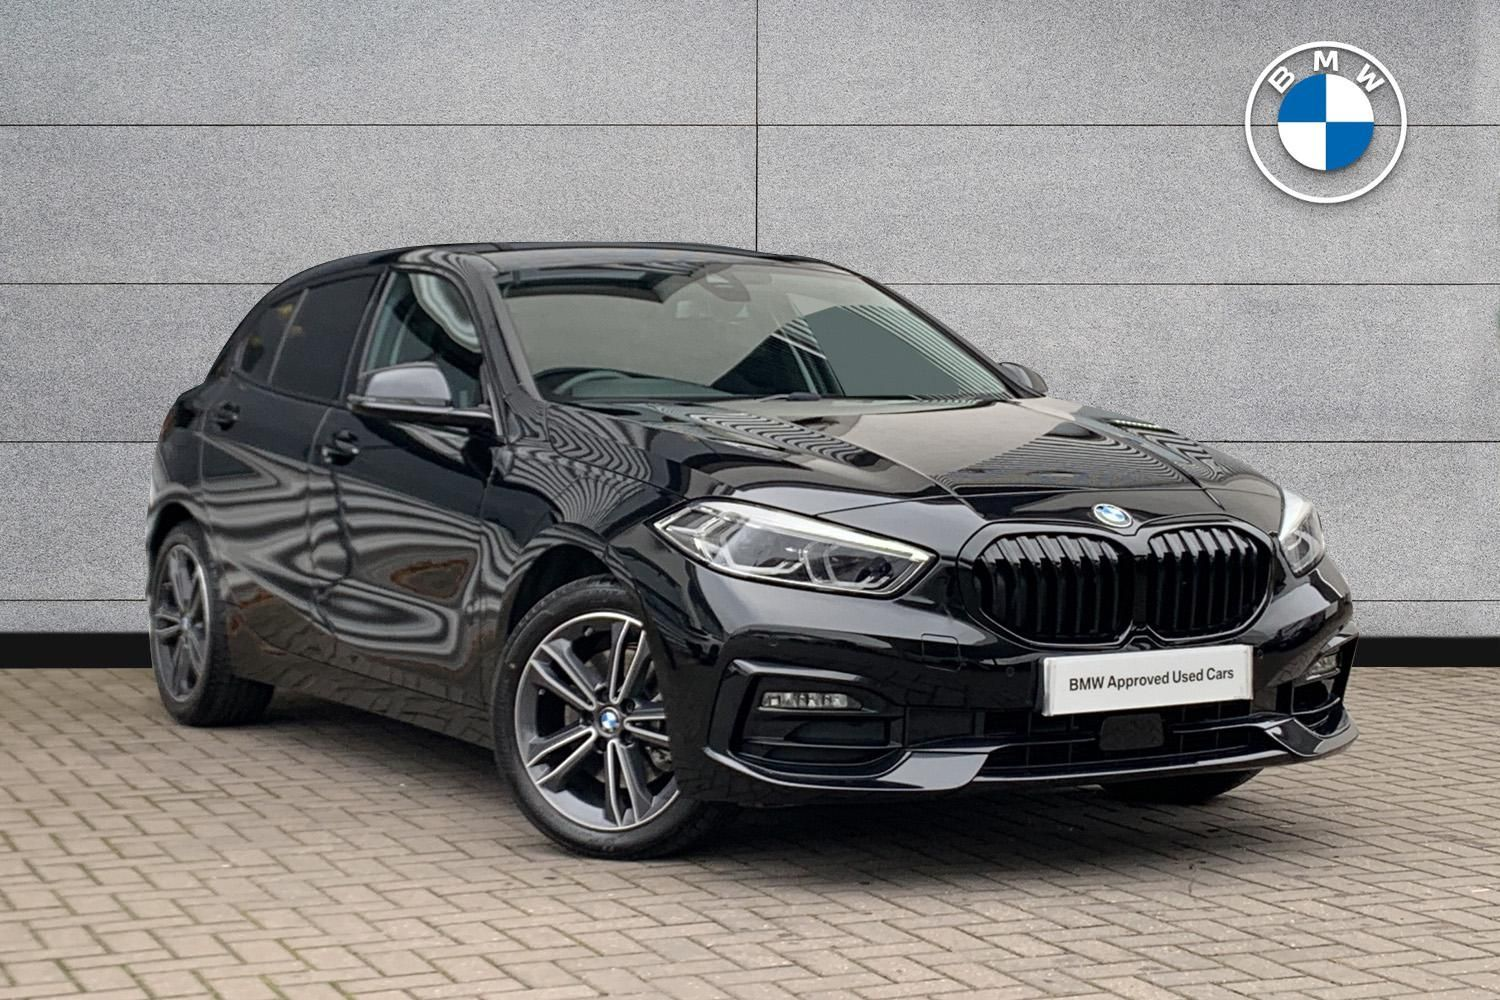 Bmw 1 Series Black 5dr 2019 For Sale In Wolverhampton Rybrook